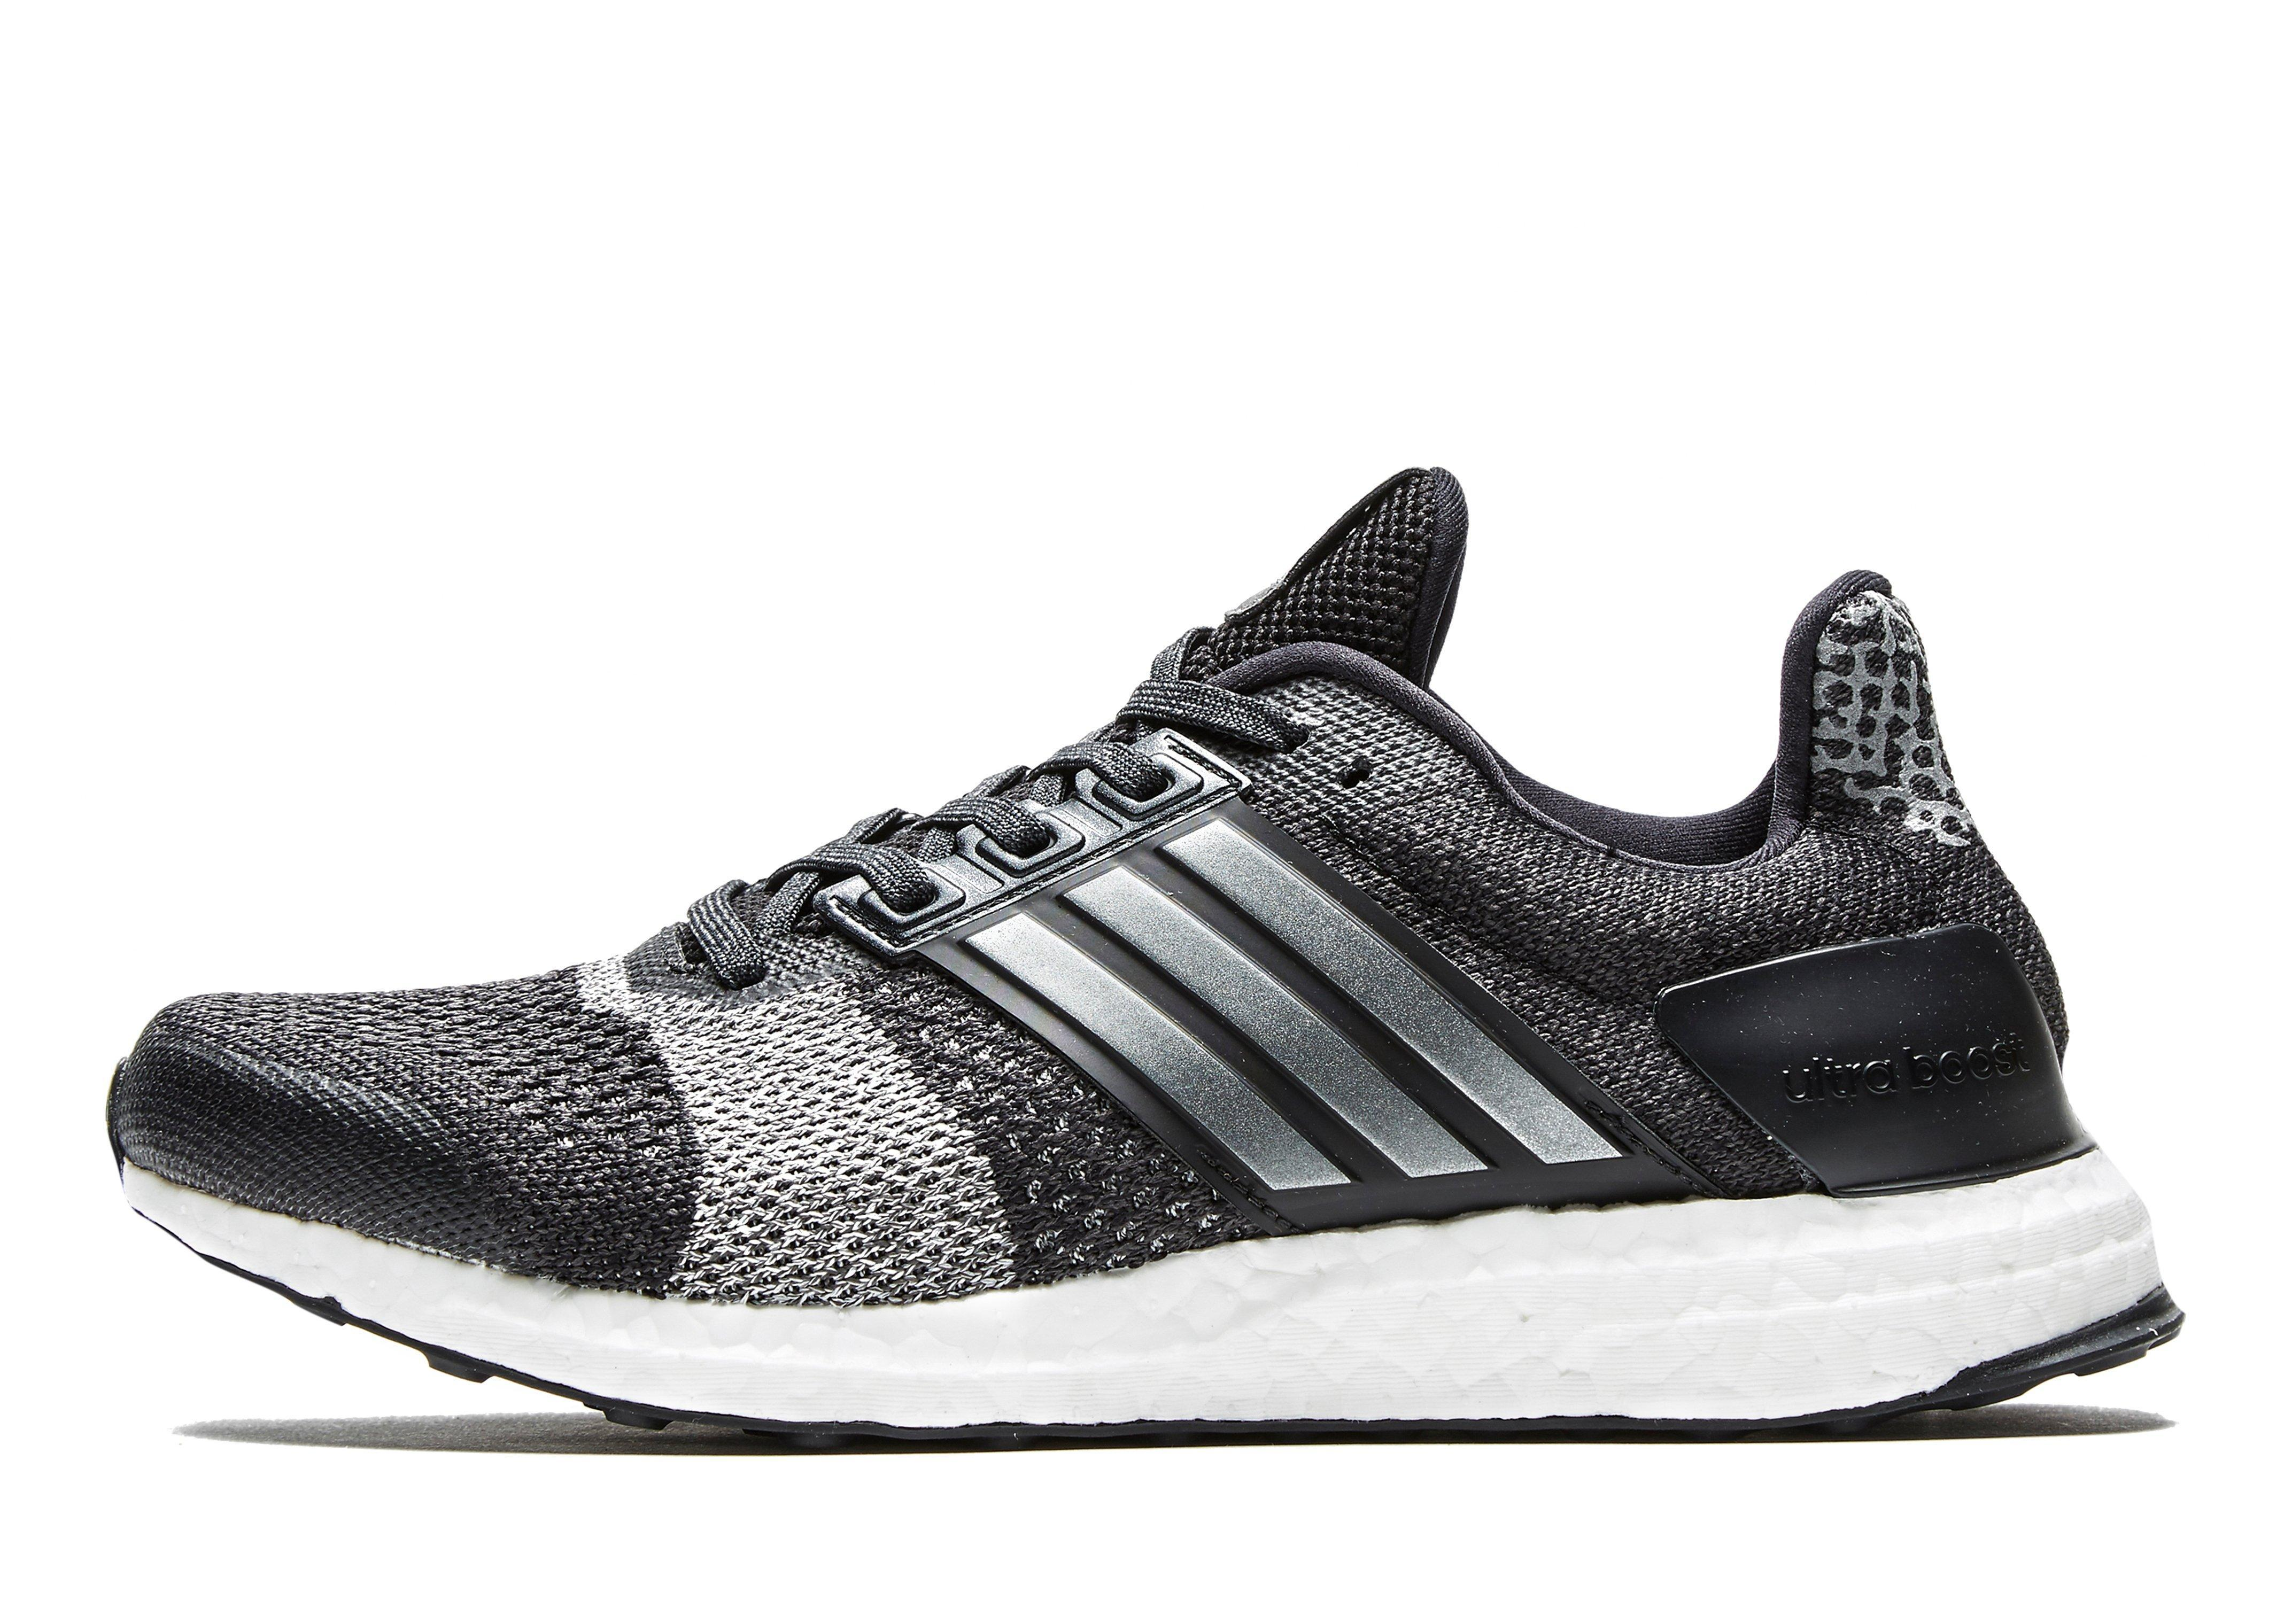 6831c0610 Lyst - Adidas Originals Ultra Boost St Men s Running Shoes in Black ...